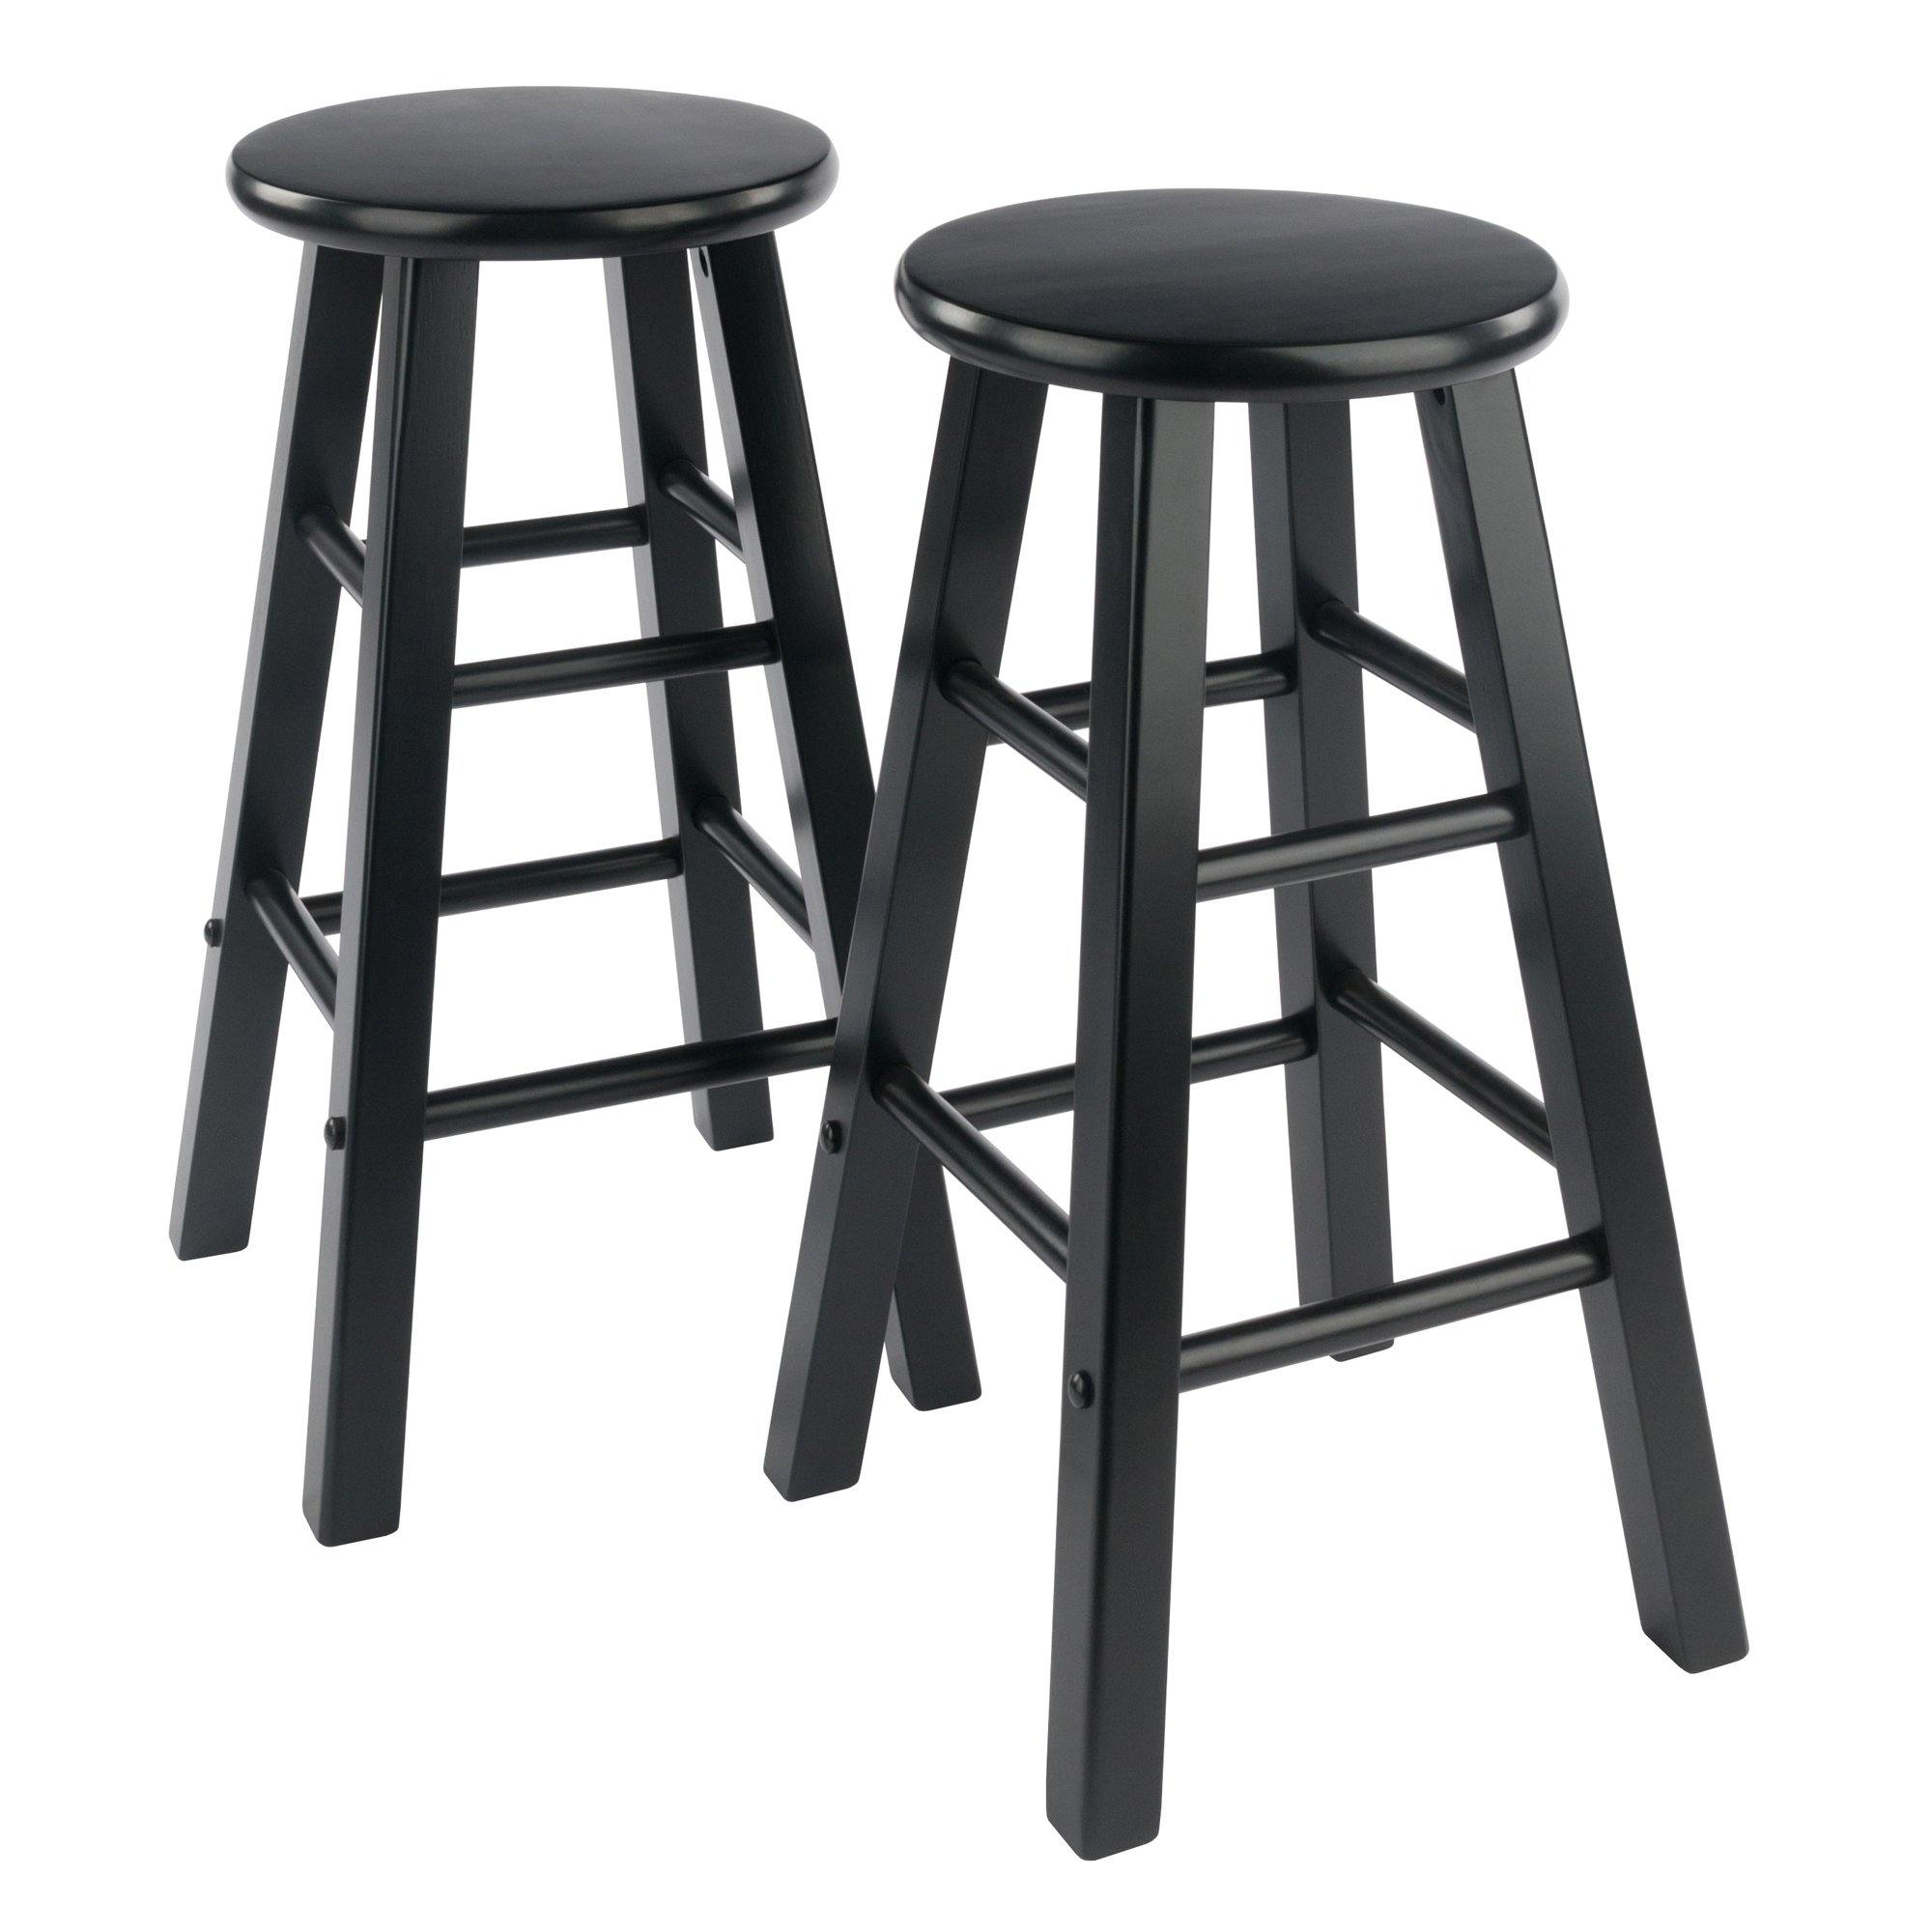 Element Counter Stools, 2-Pc Set, Black - My USA Furniture